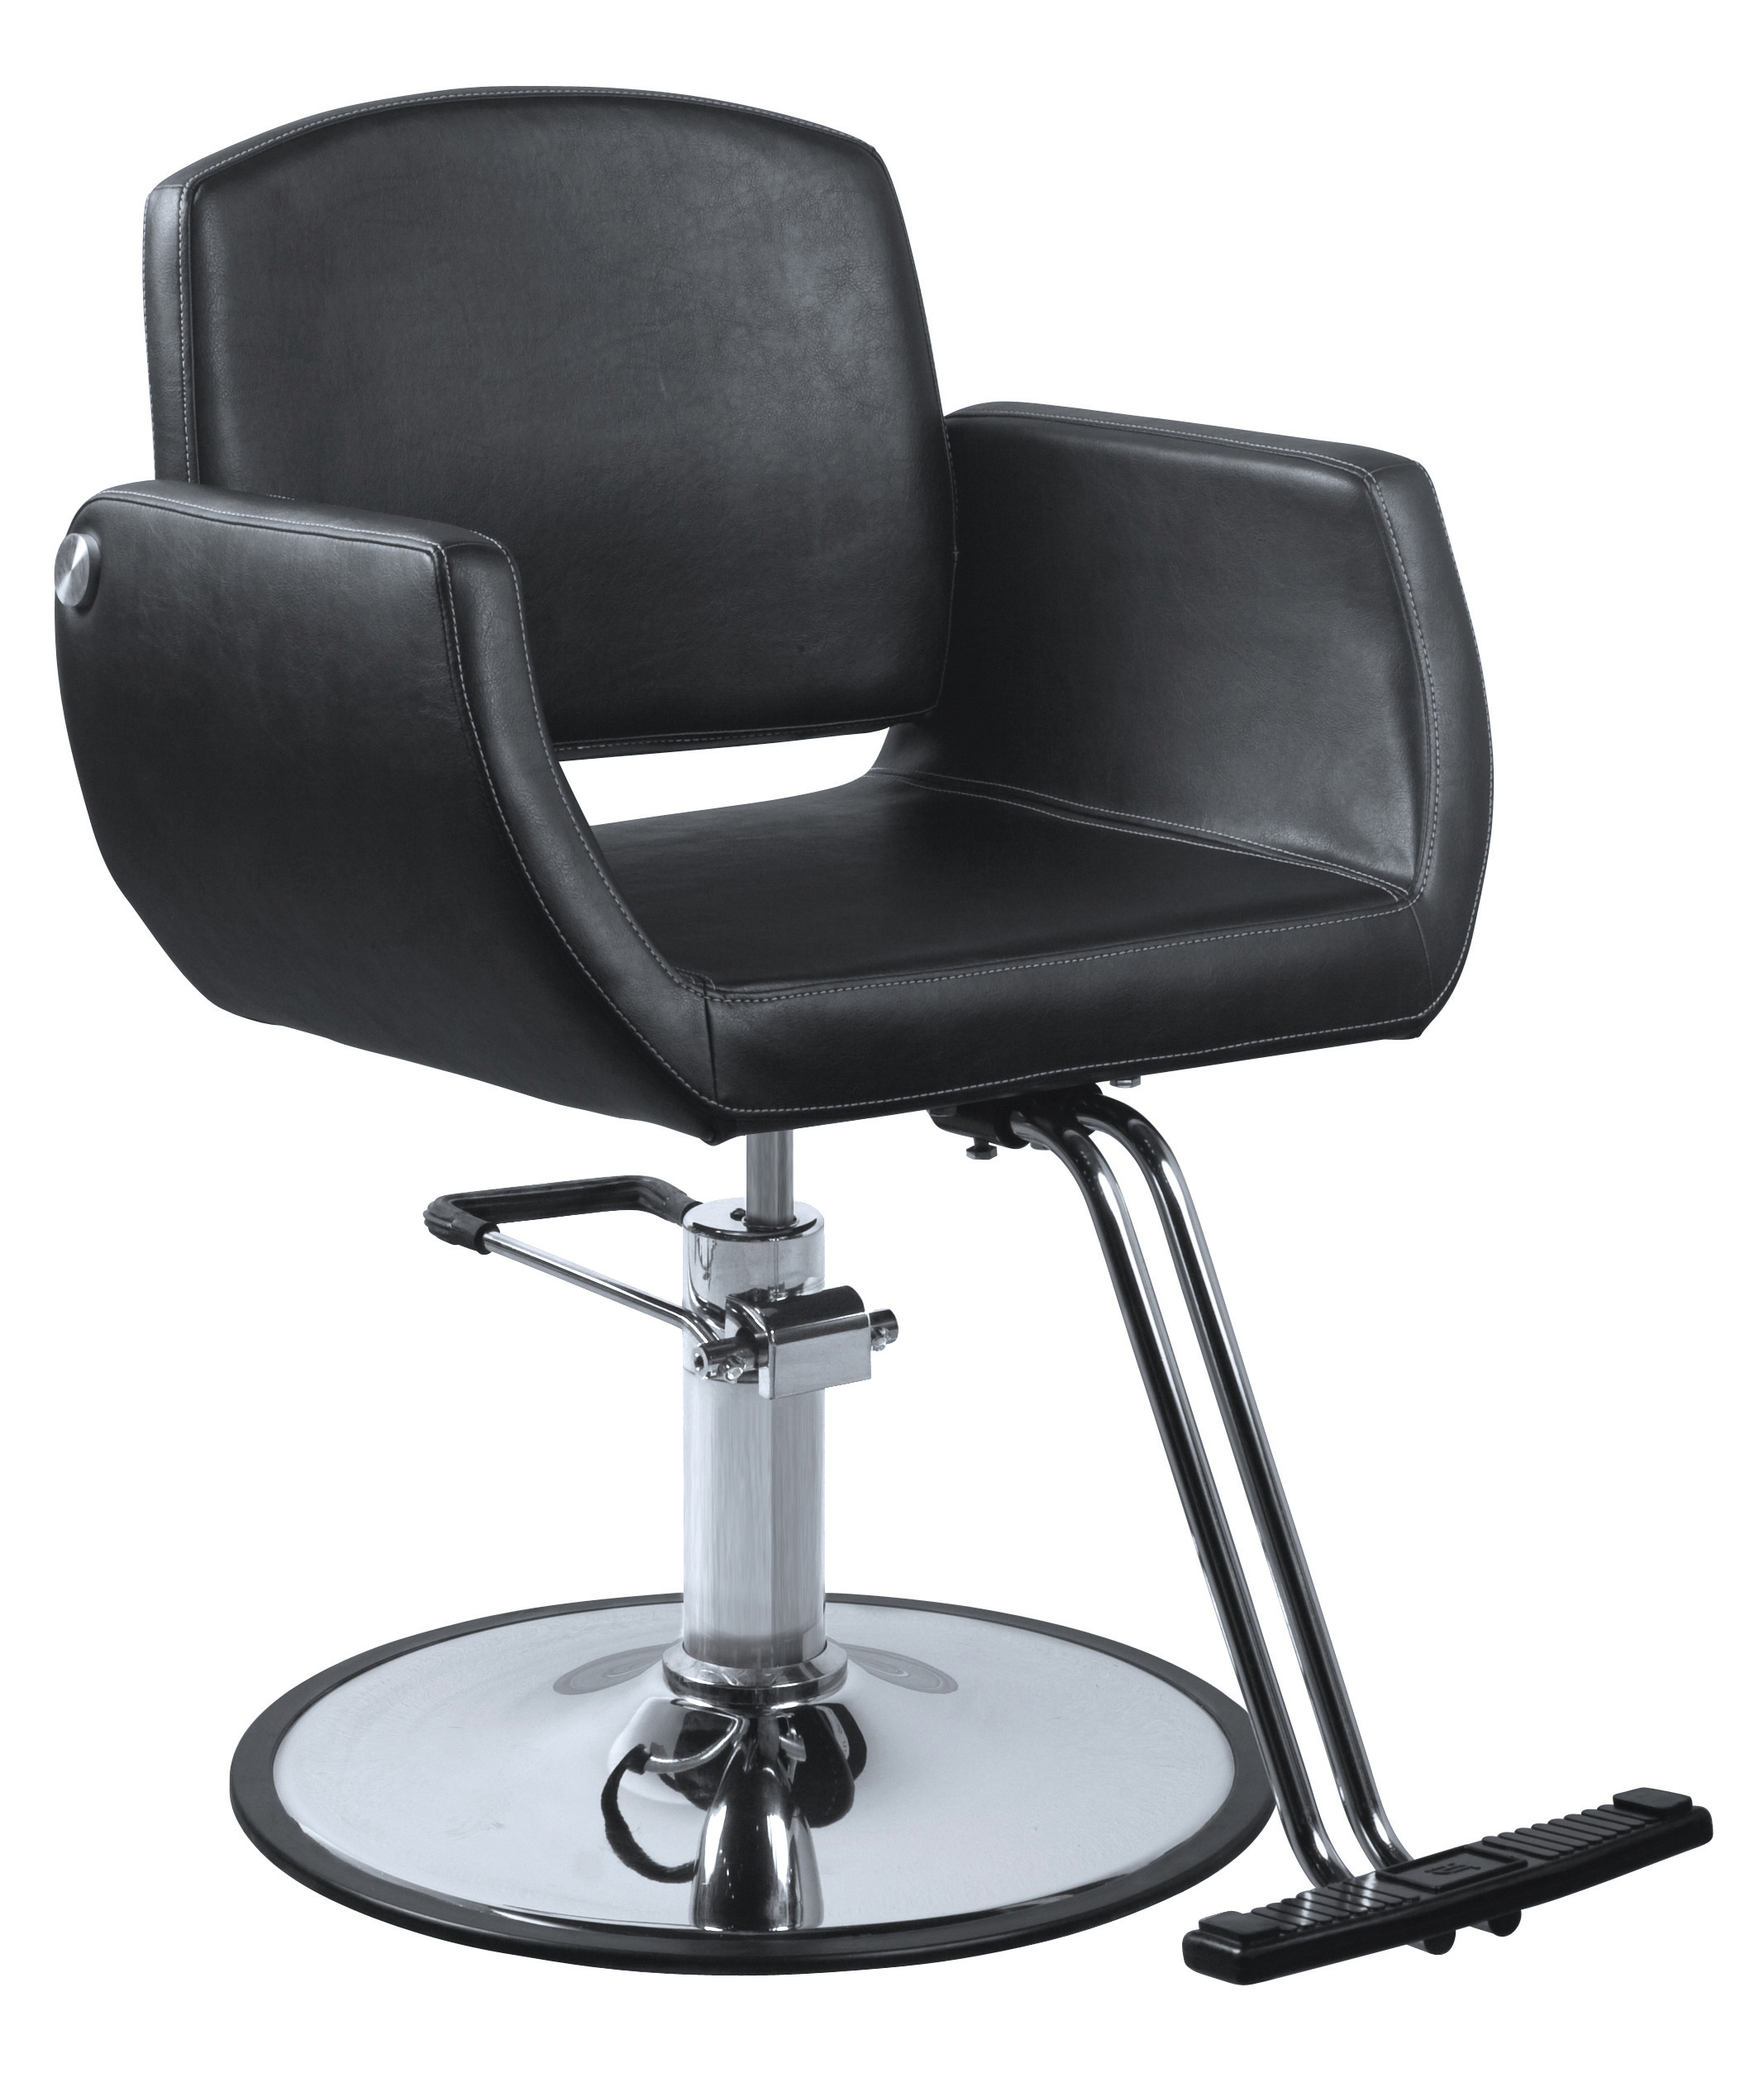 black salon chairs reclining chair with ottoman canada kate styling